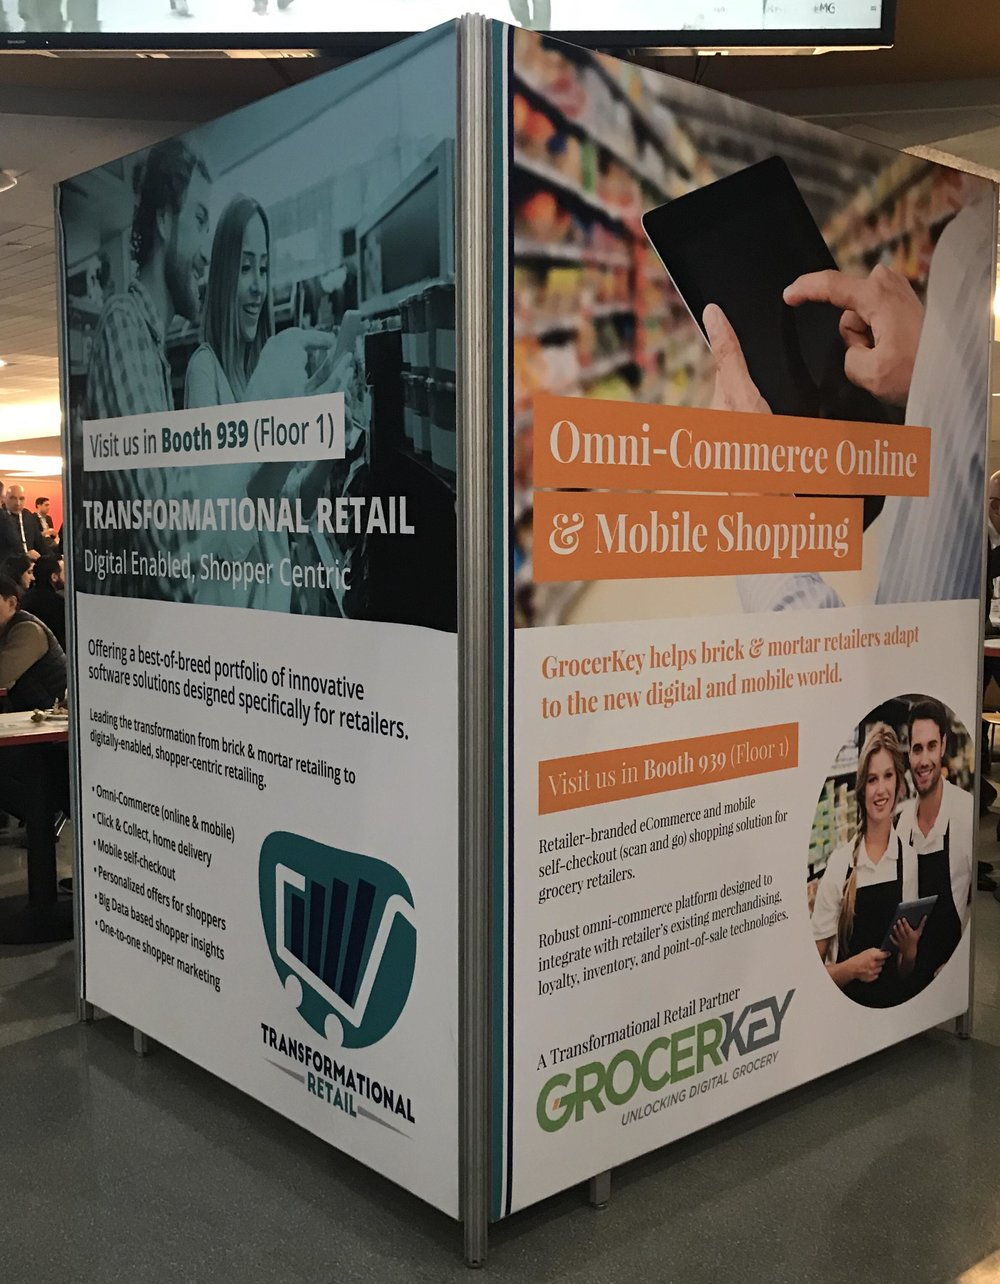 Transformational Retail & GrocerKey column wrap at NRF2018